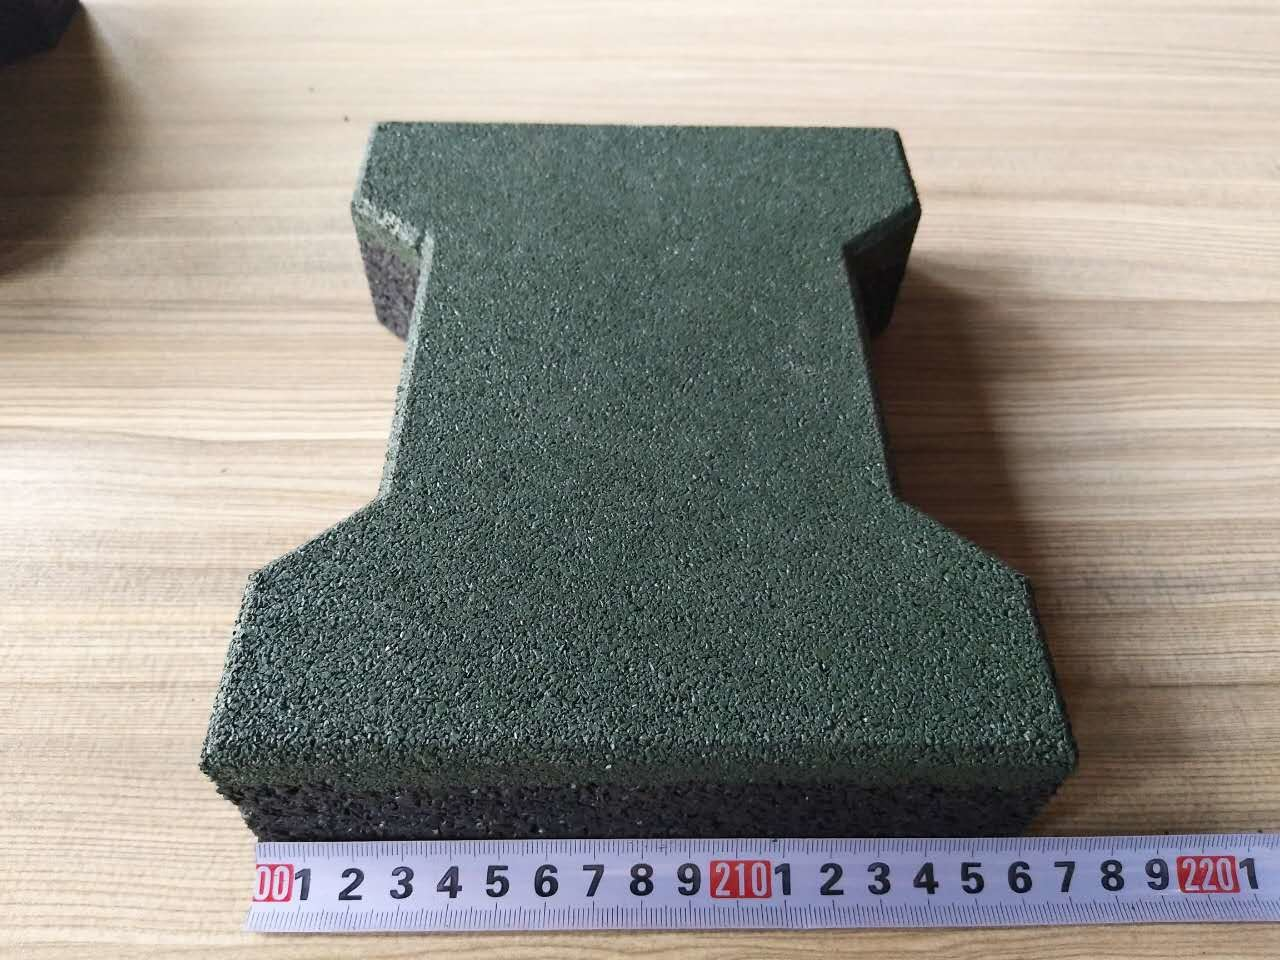 Colorful Wear Resistant Dog Bone Outdoor Rubber Floor Tiles For Path